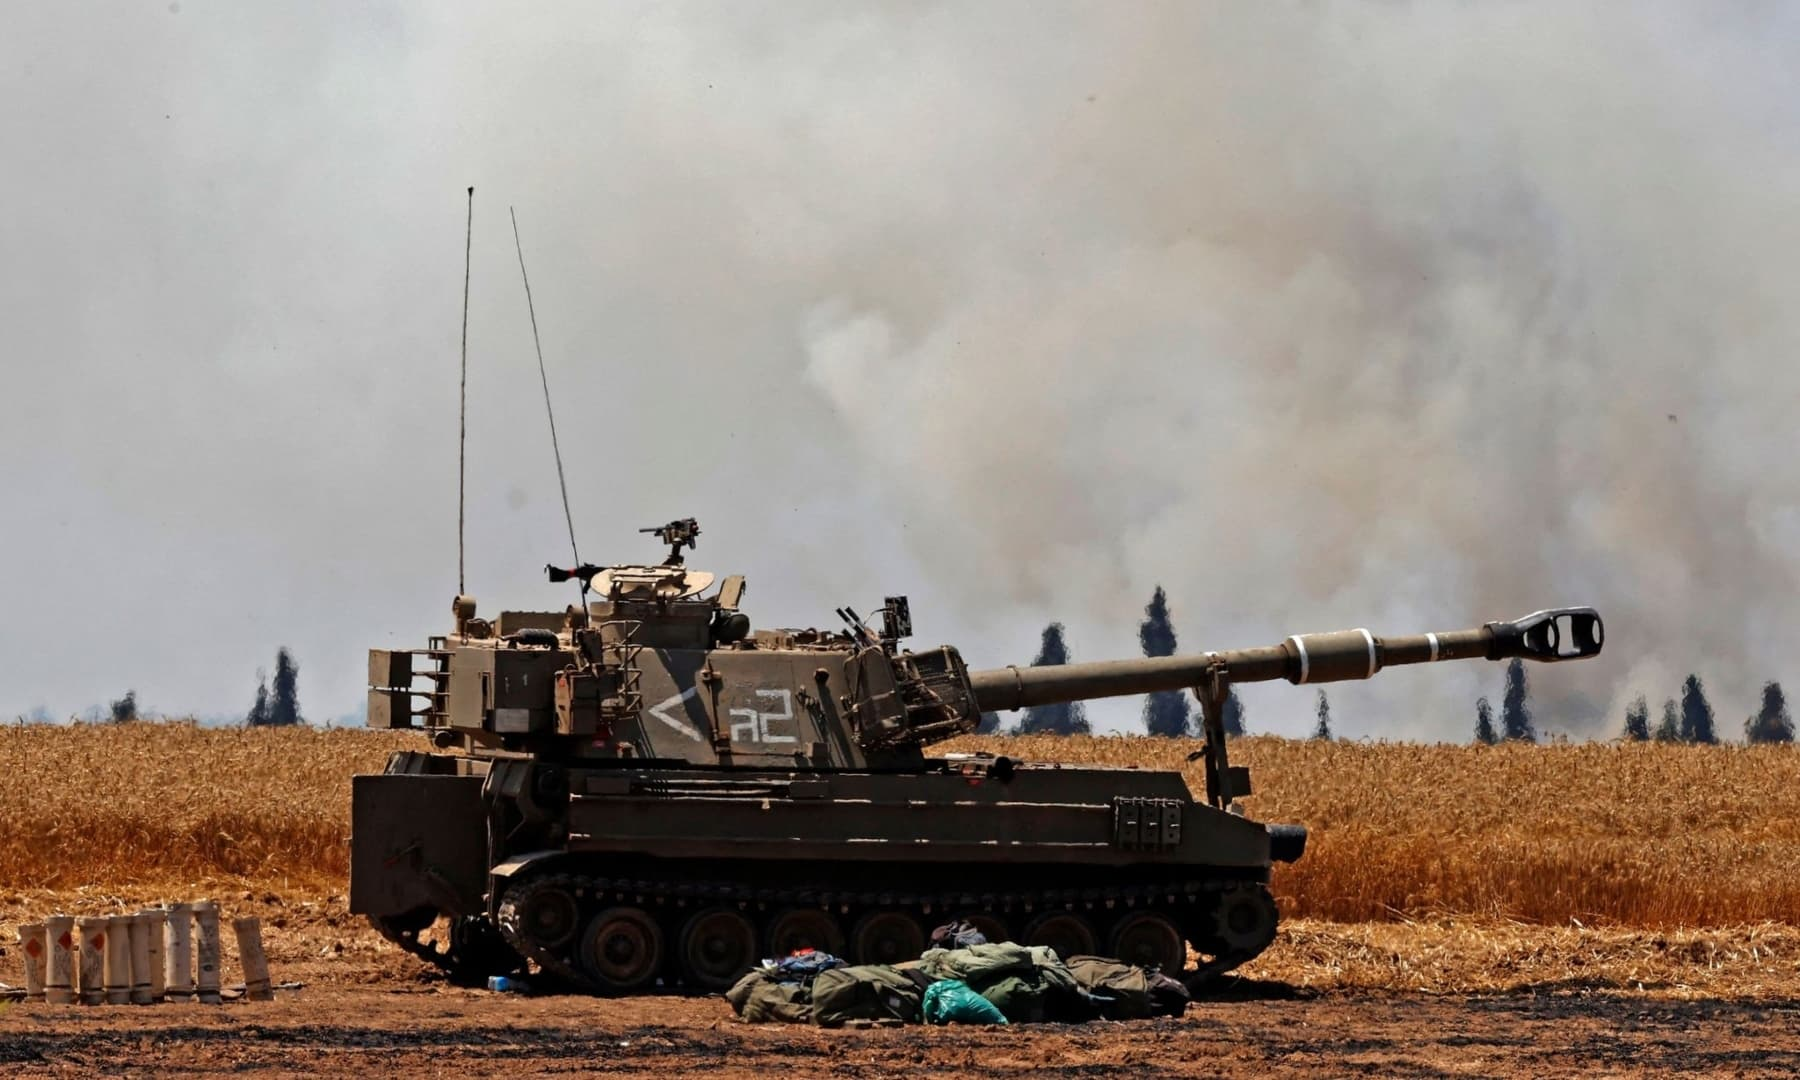 Israeli soldiers fire artillery shells towards the Gaza Strip from their position near the southern Israeli city of Sderot, May 14, 2021. — AFP